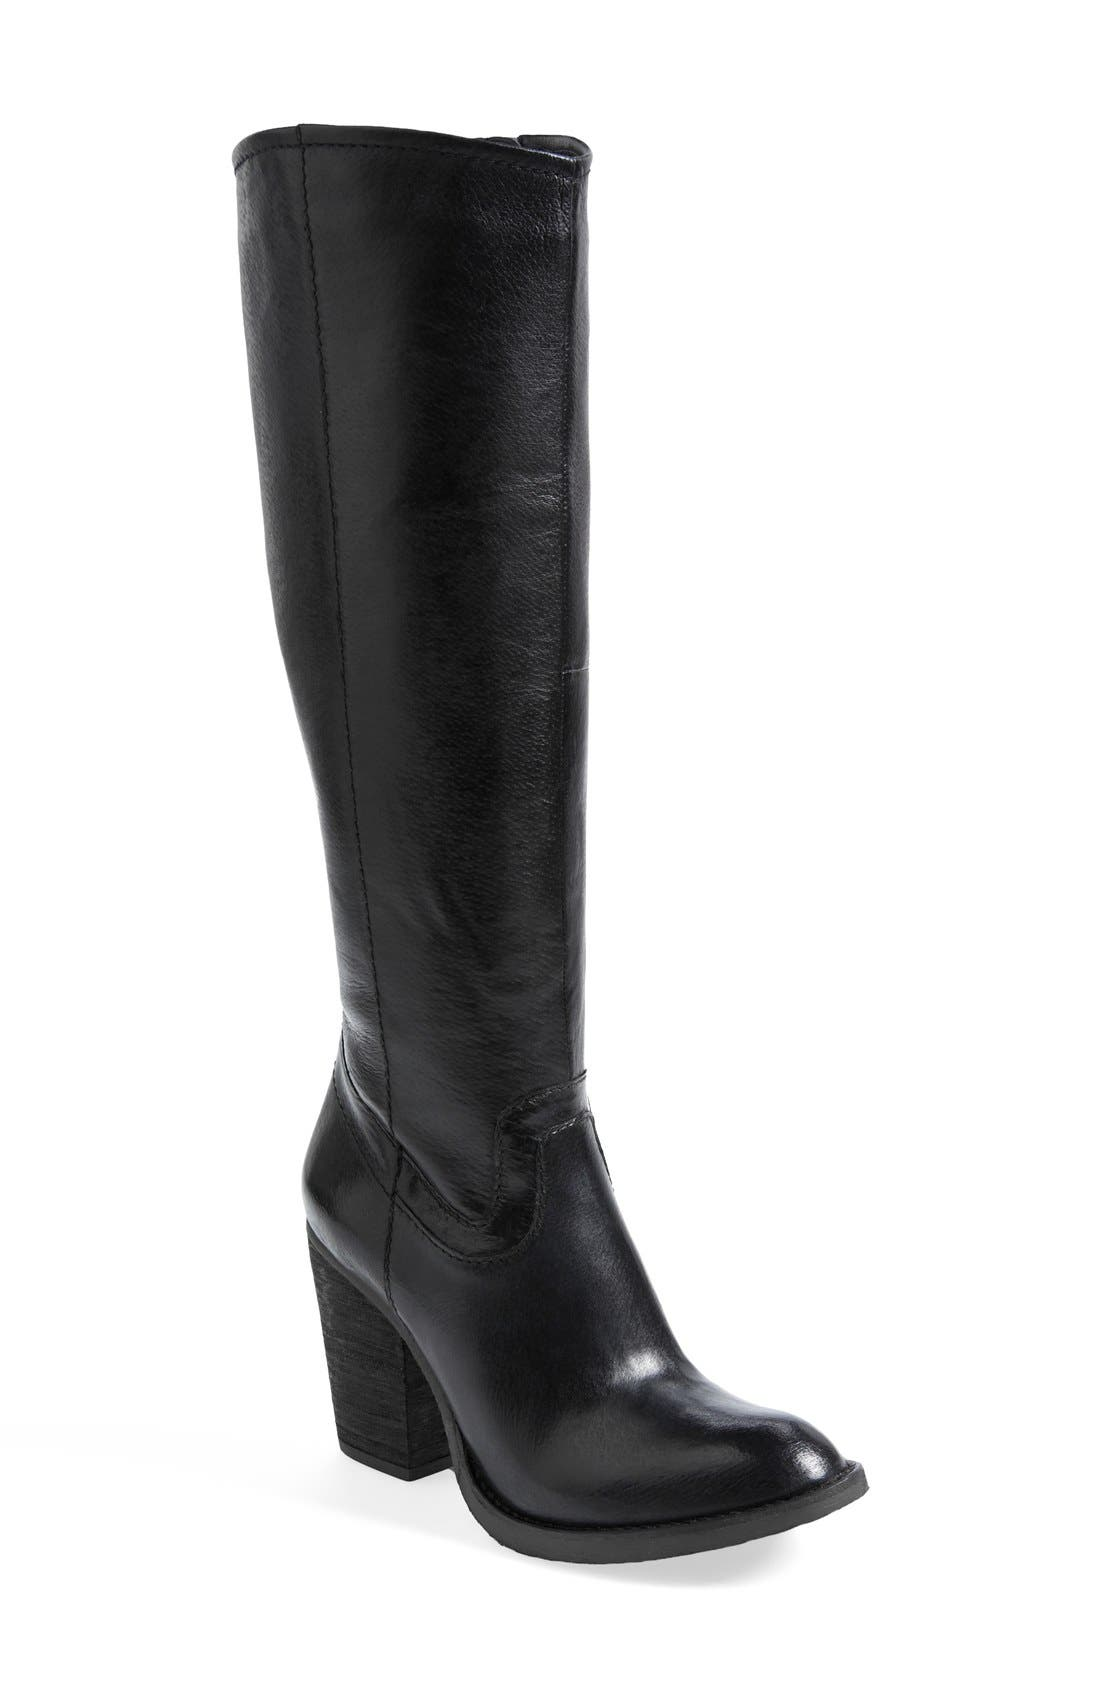 'Carrter' Knee High Leather Boot,                             Main thumbnail 1, color,                             001